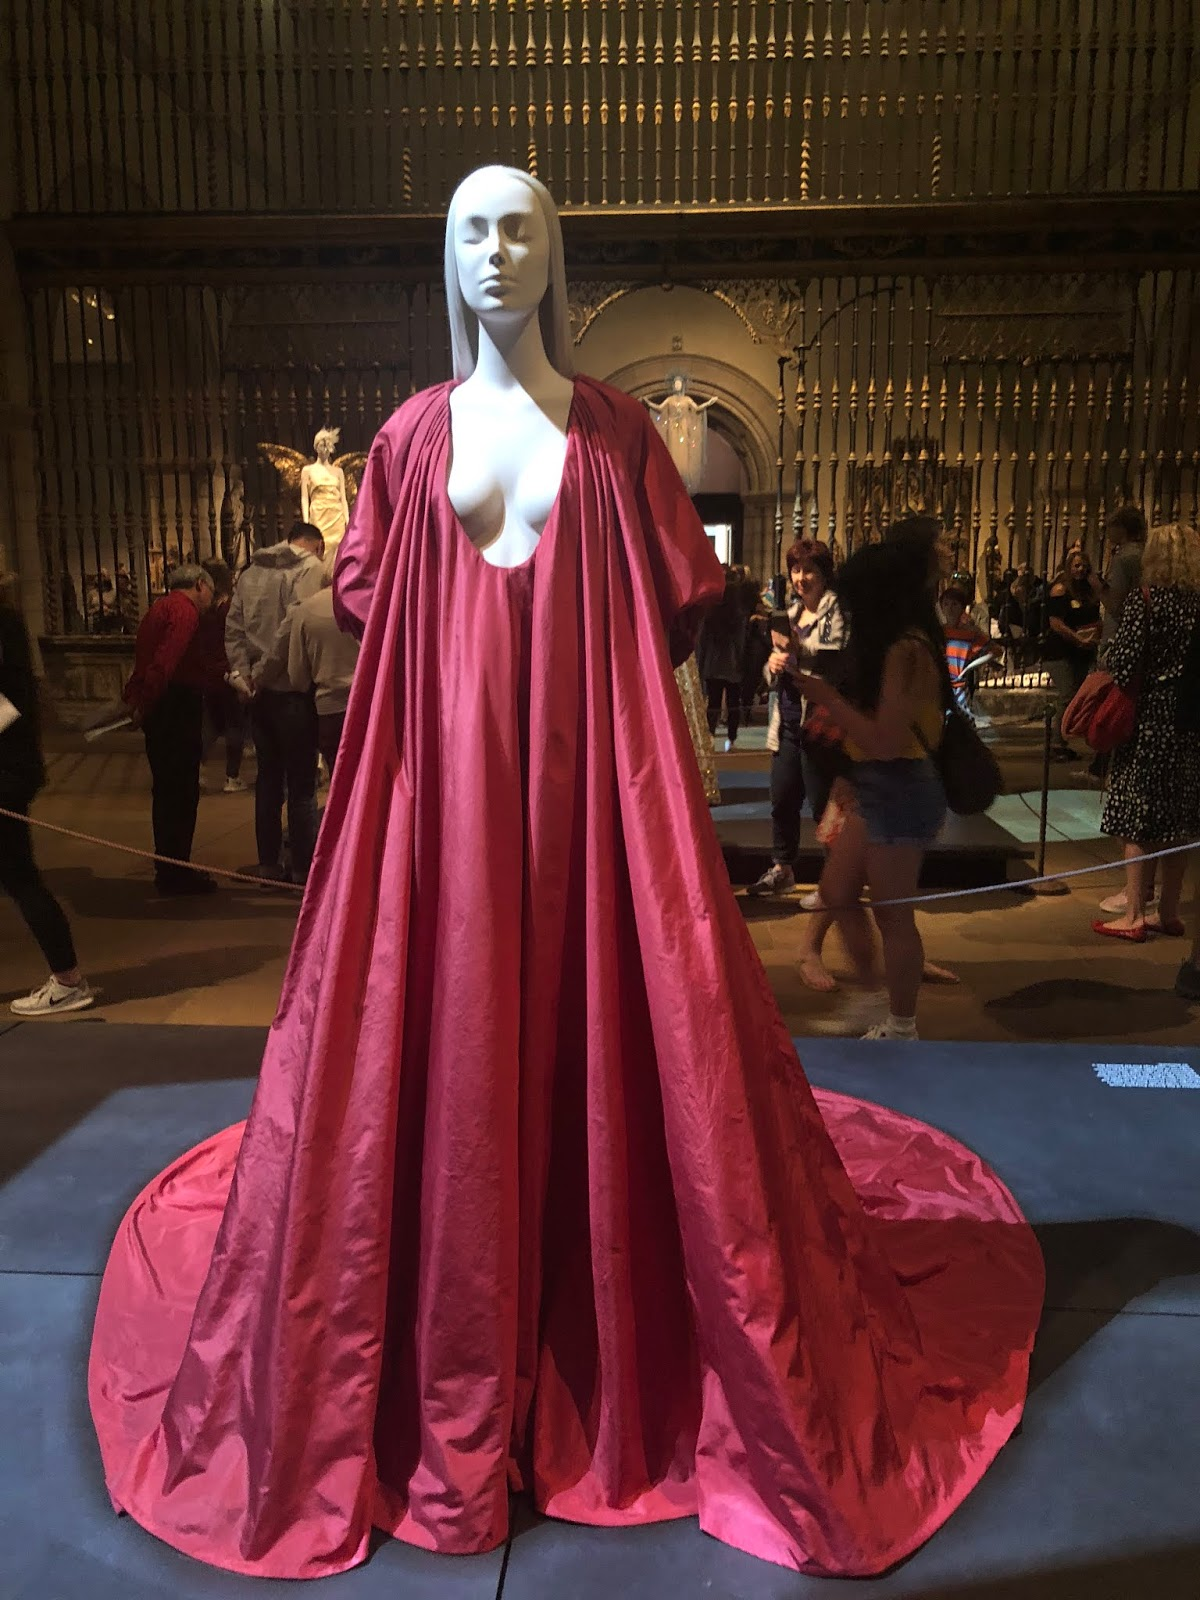 Heavenly Bodies at The Met, NYC by Laura Lewis